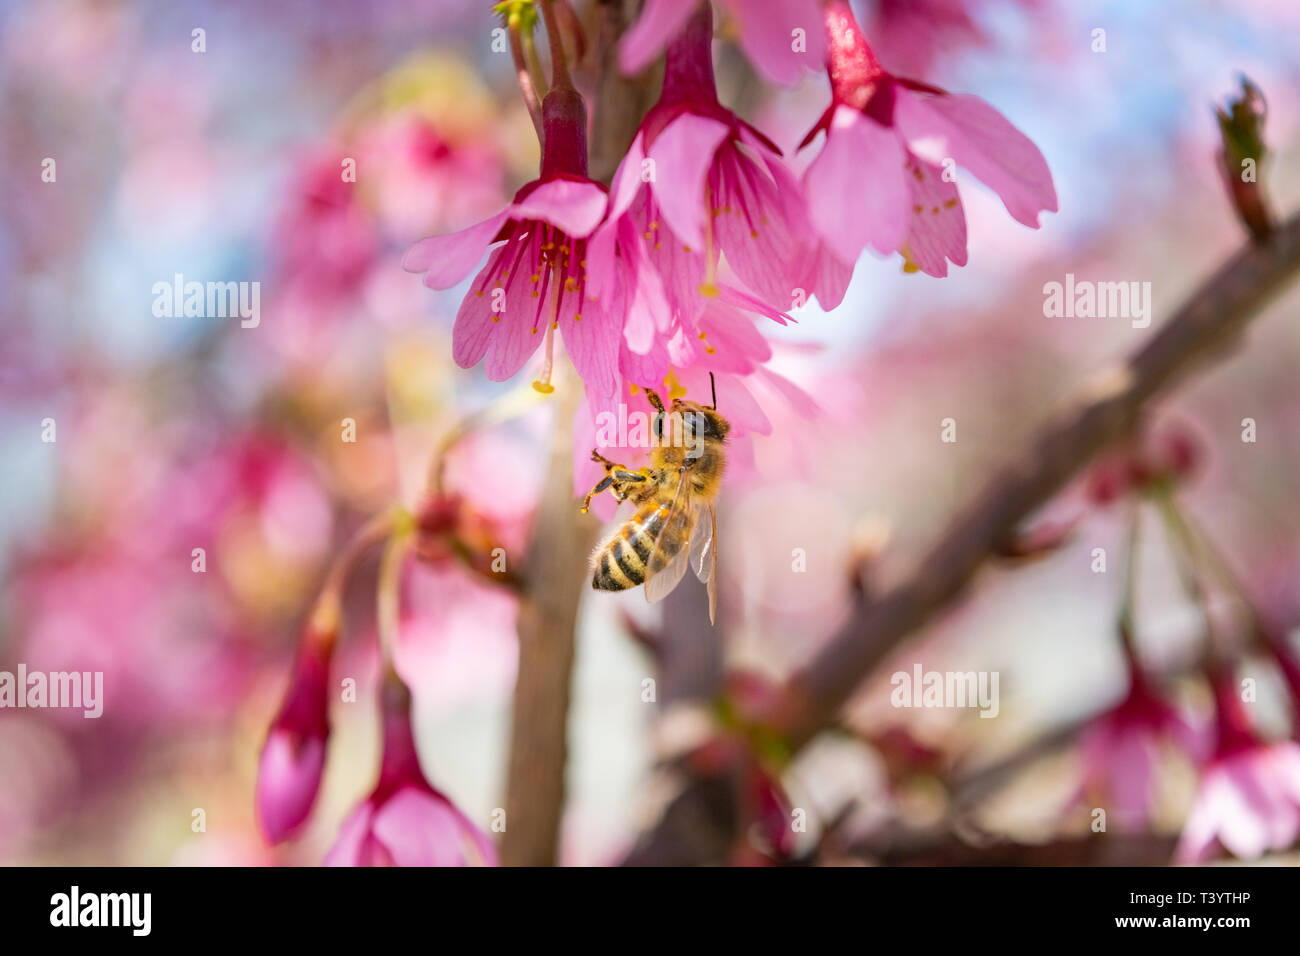 Closeup of a honey bee working hard collecting pollen from a beautiful pink spring flower - Stock Image